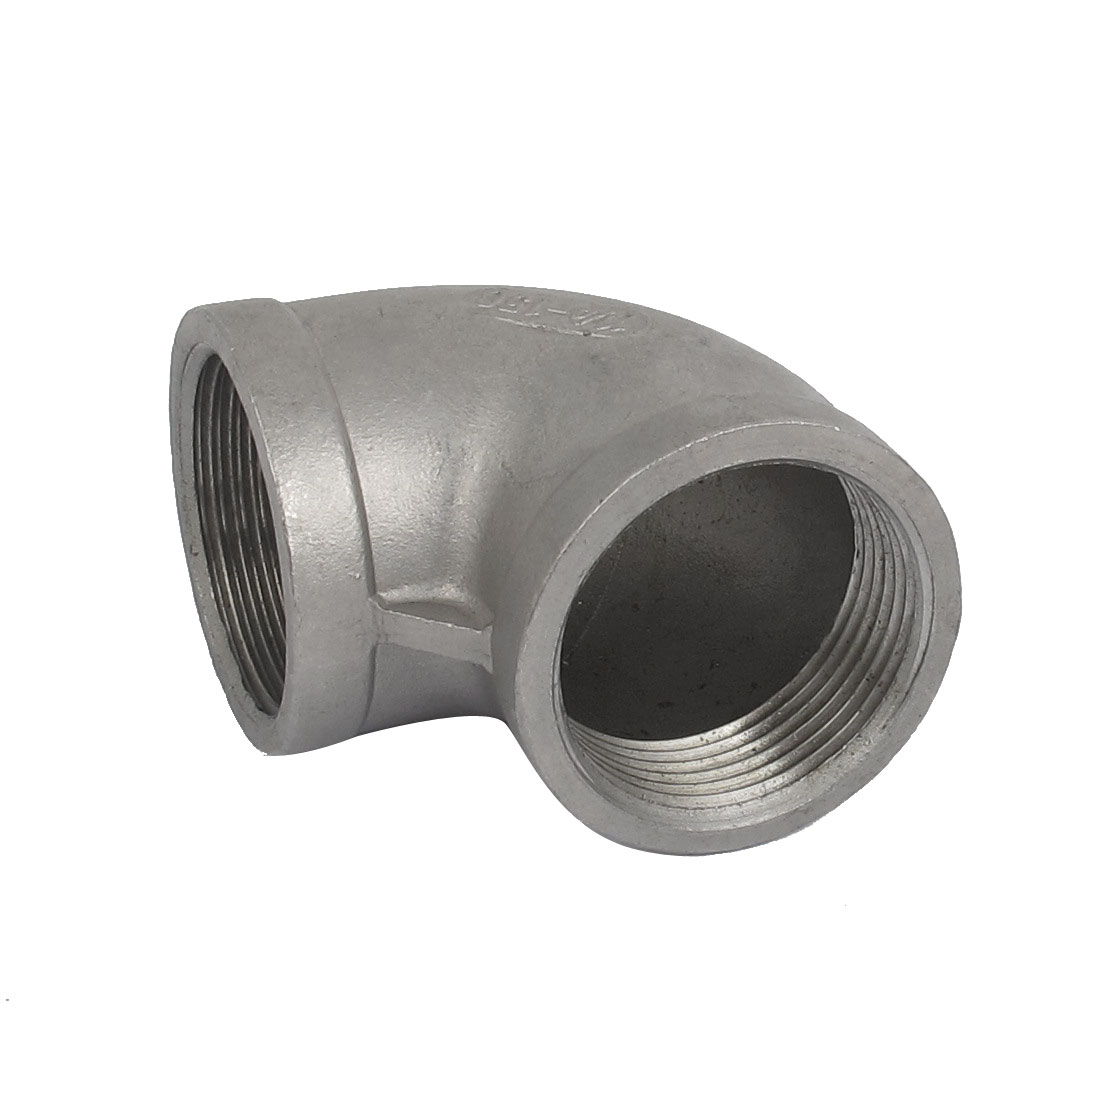 Equal Female Elbow Water Tube Coupling Fitting 1 1/4 BSP to 1 1/4 BSP Grey